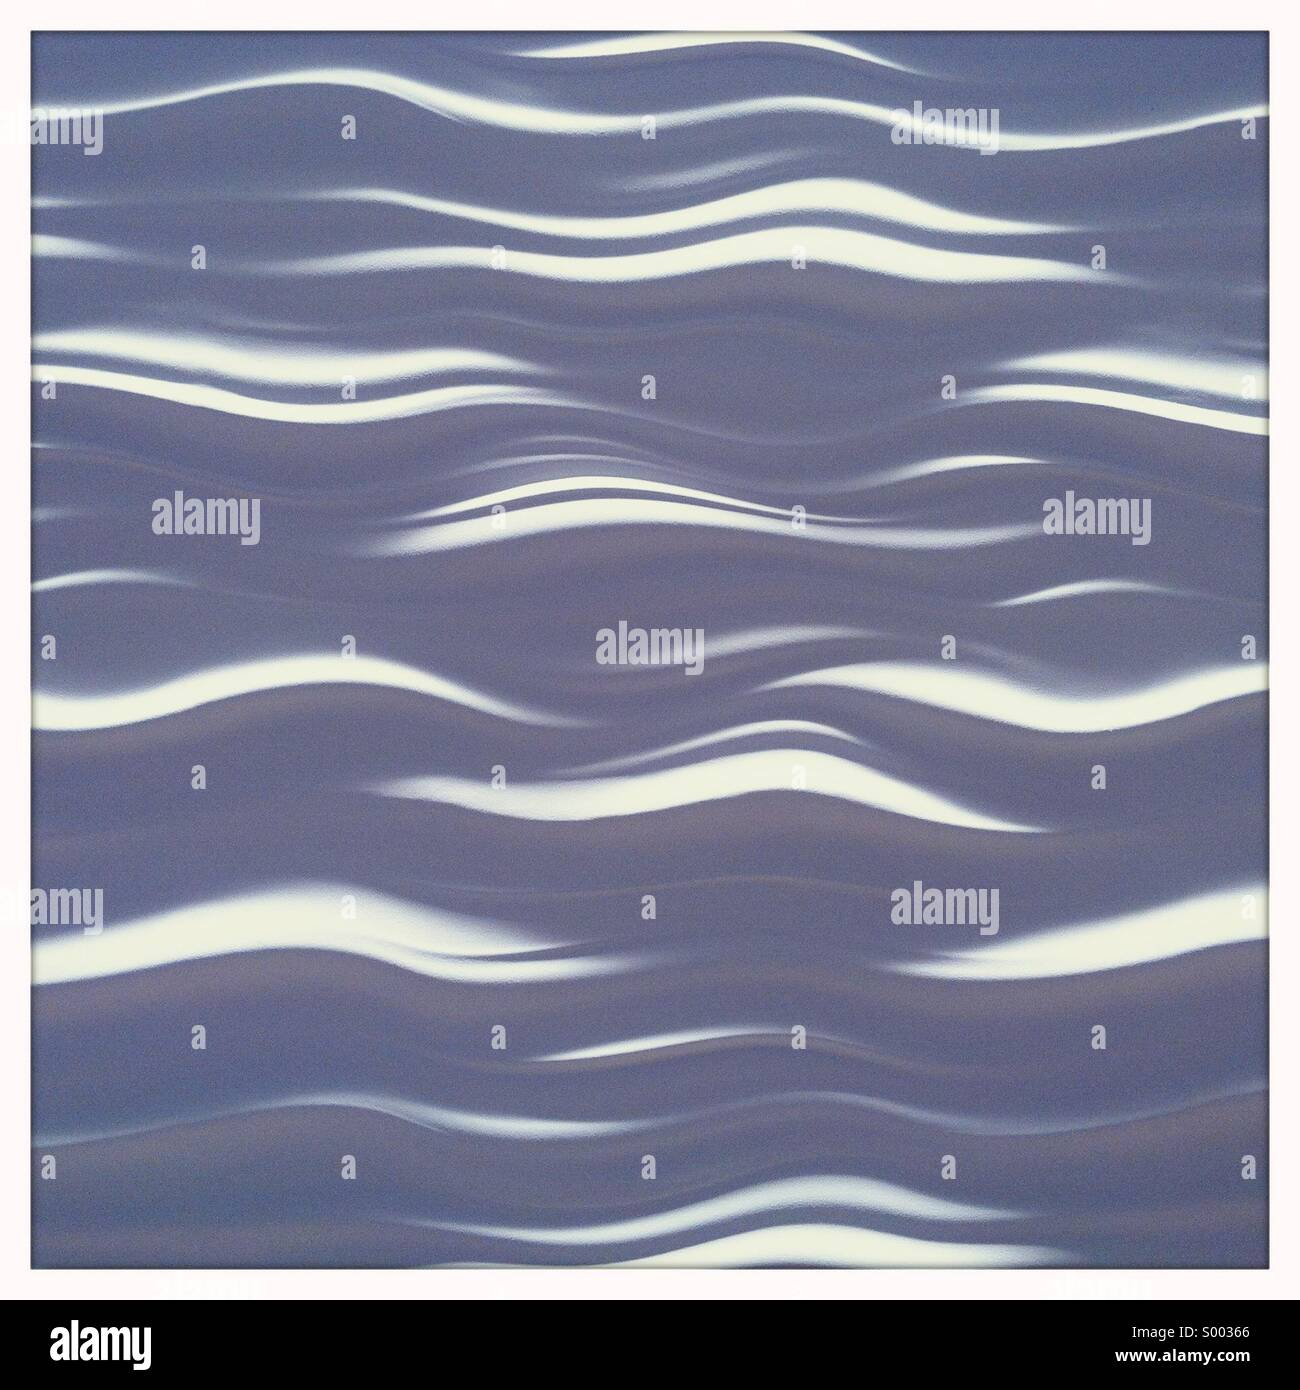 A pattern of soft white waves - Stock Image